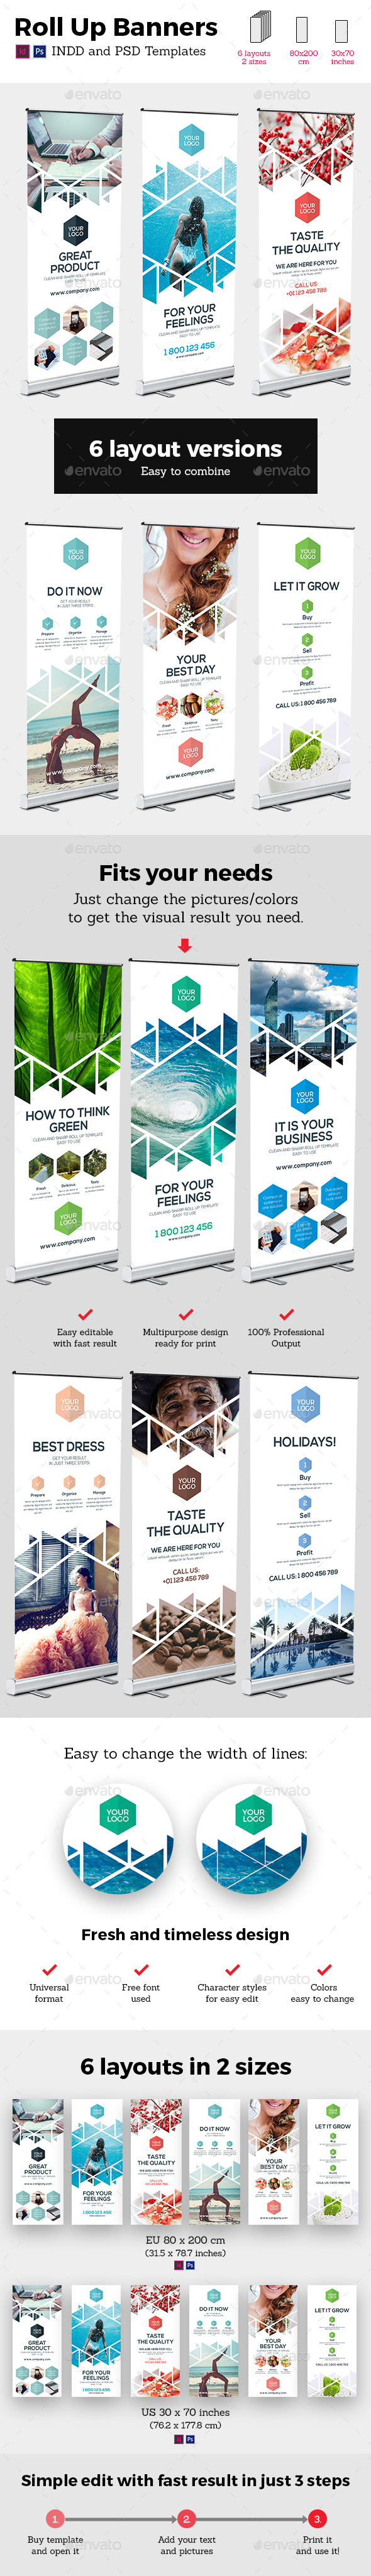 Rollup Stand Banner Display Triangle White 6x Indesign and Photoshop Template - Signage Print Templates